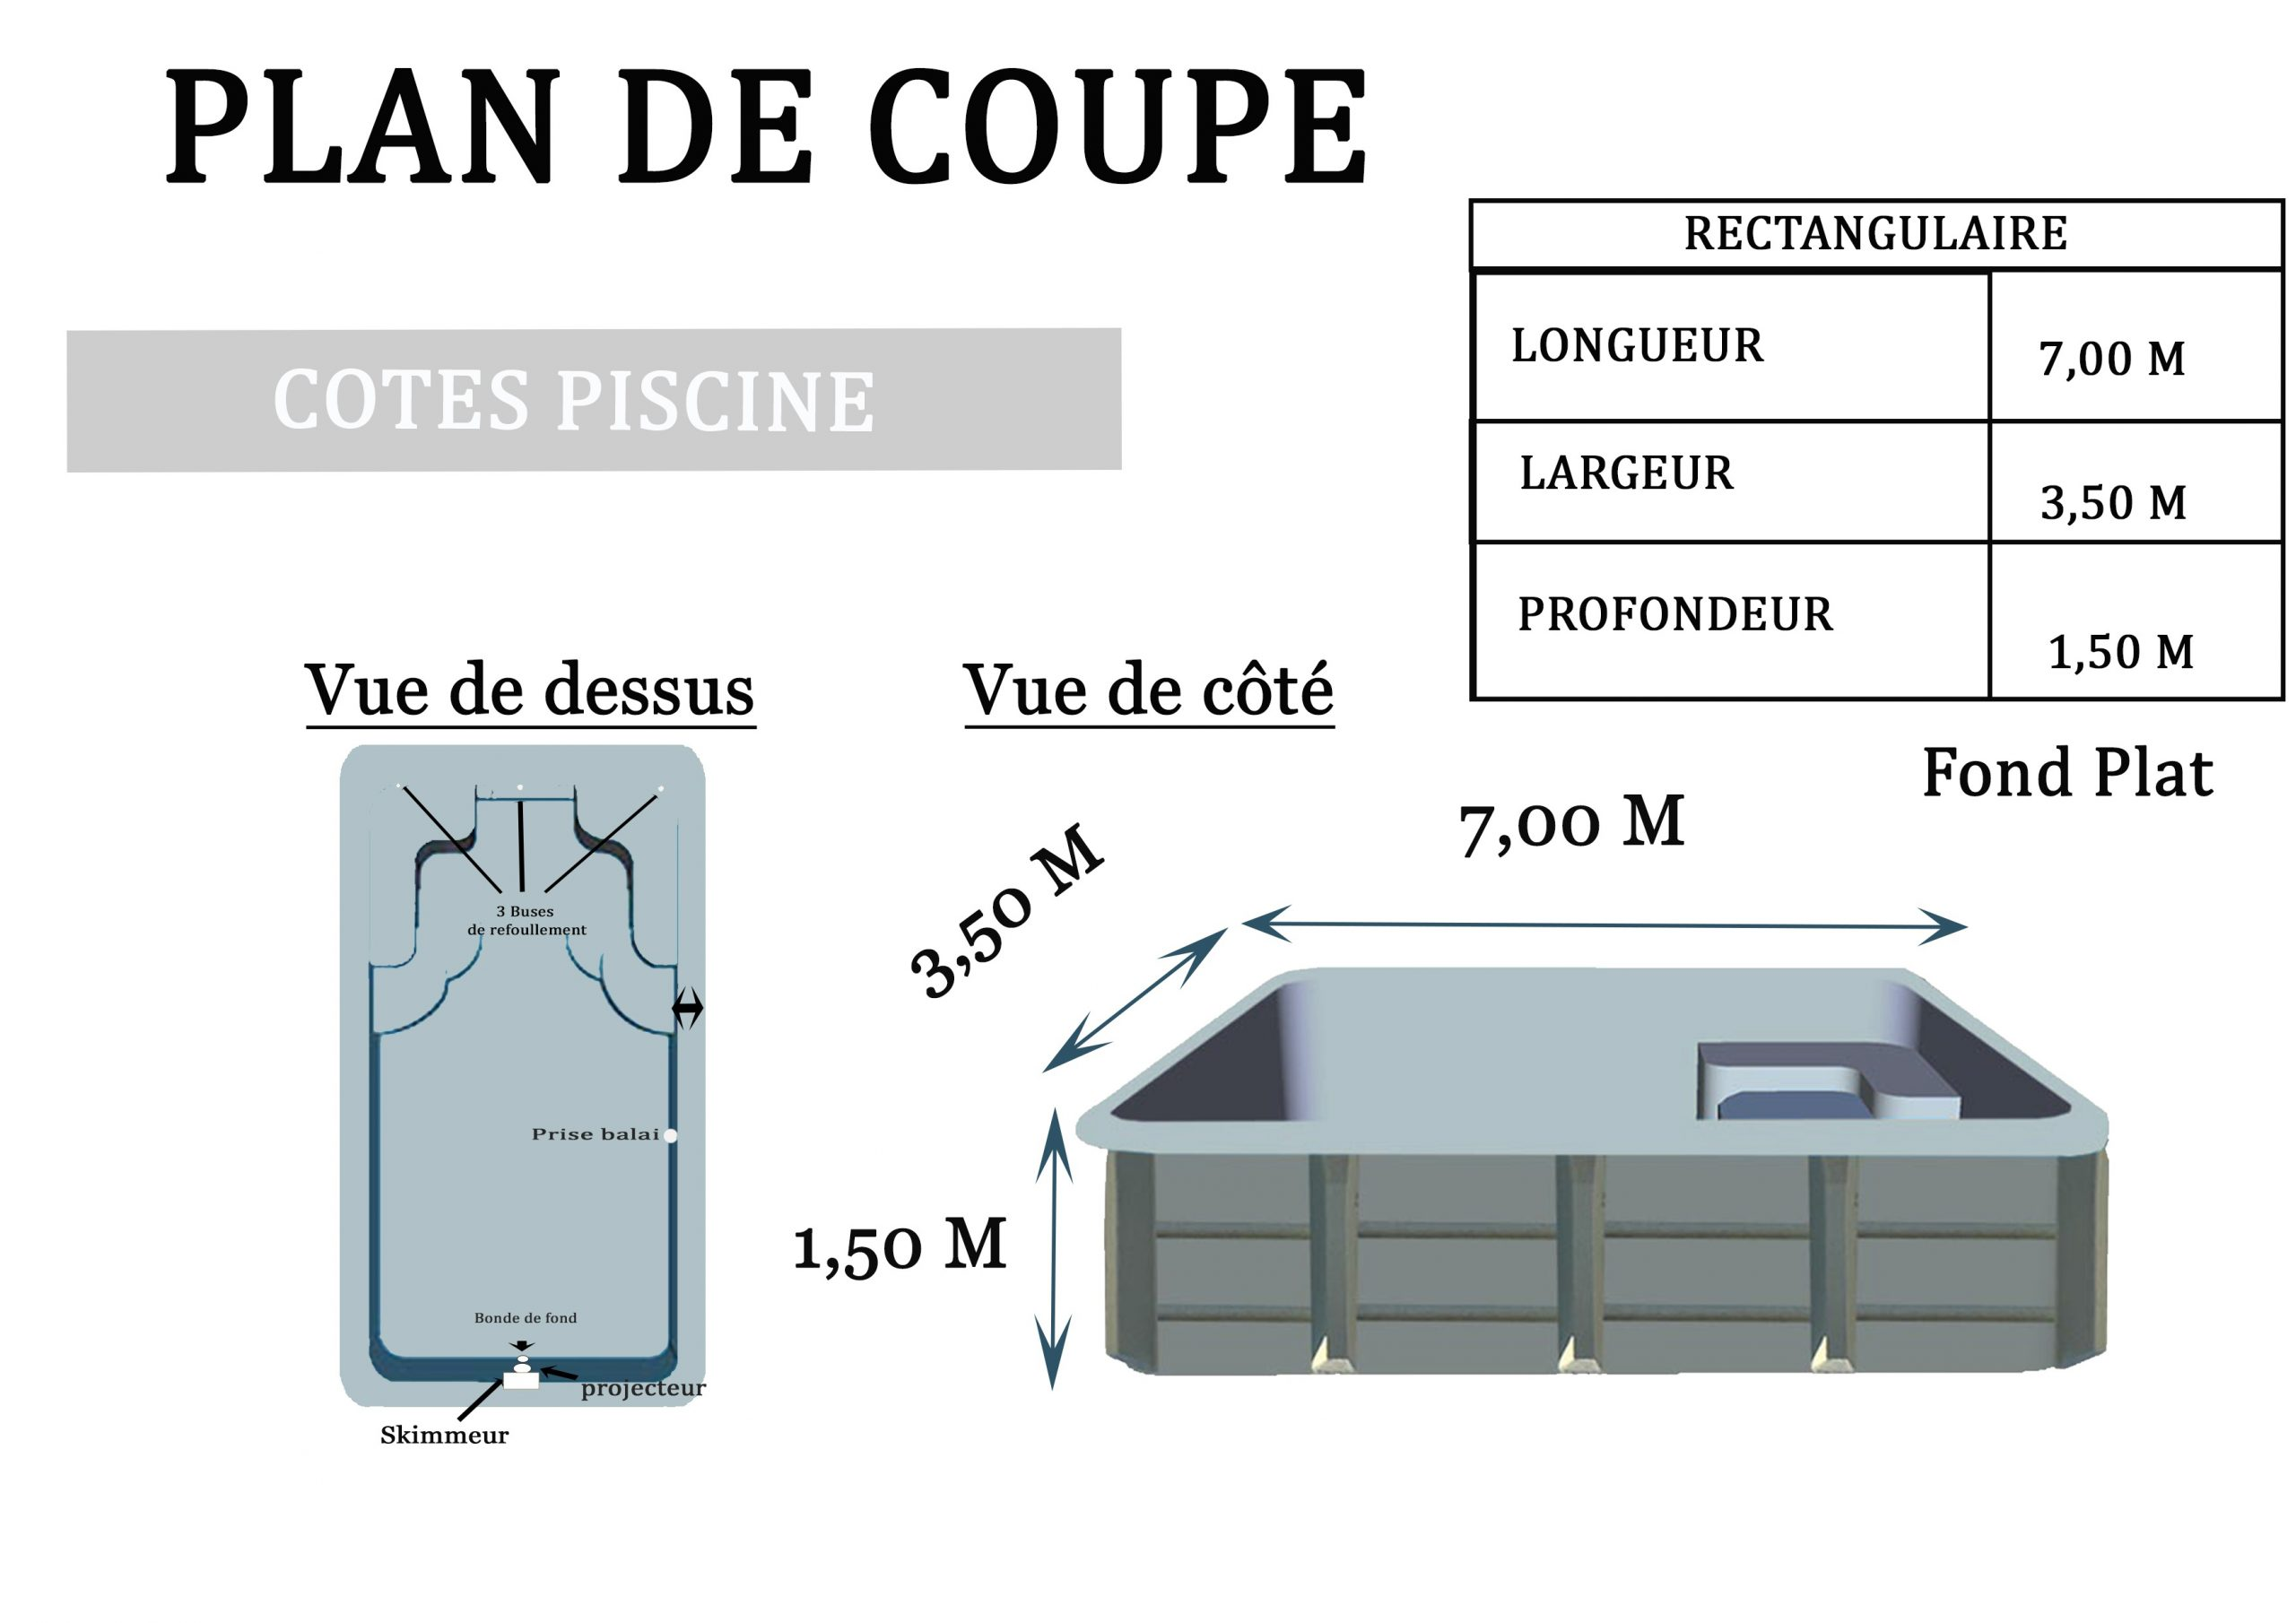 Piscine Polyester Rectangulaire 700 destiné Plan De Coupe Piscine